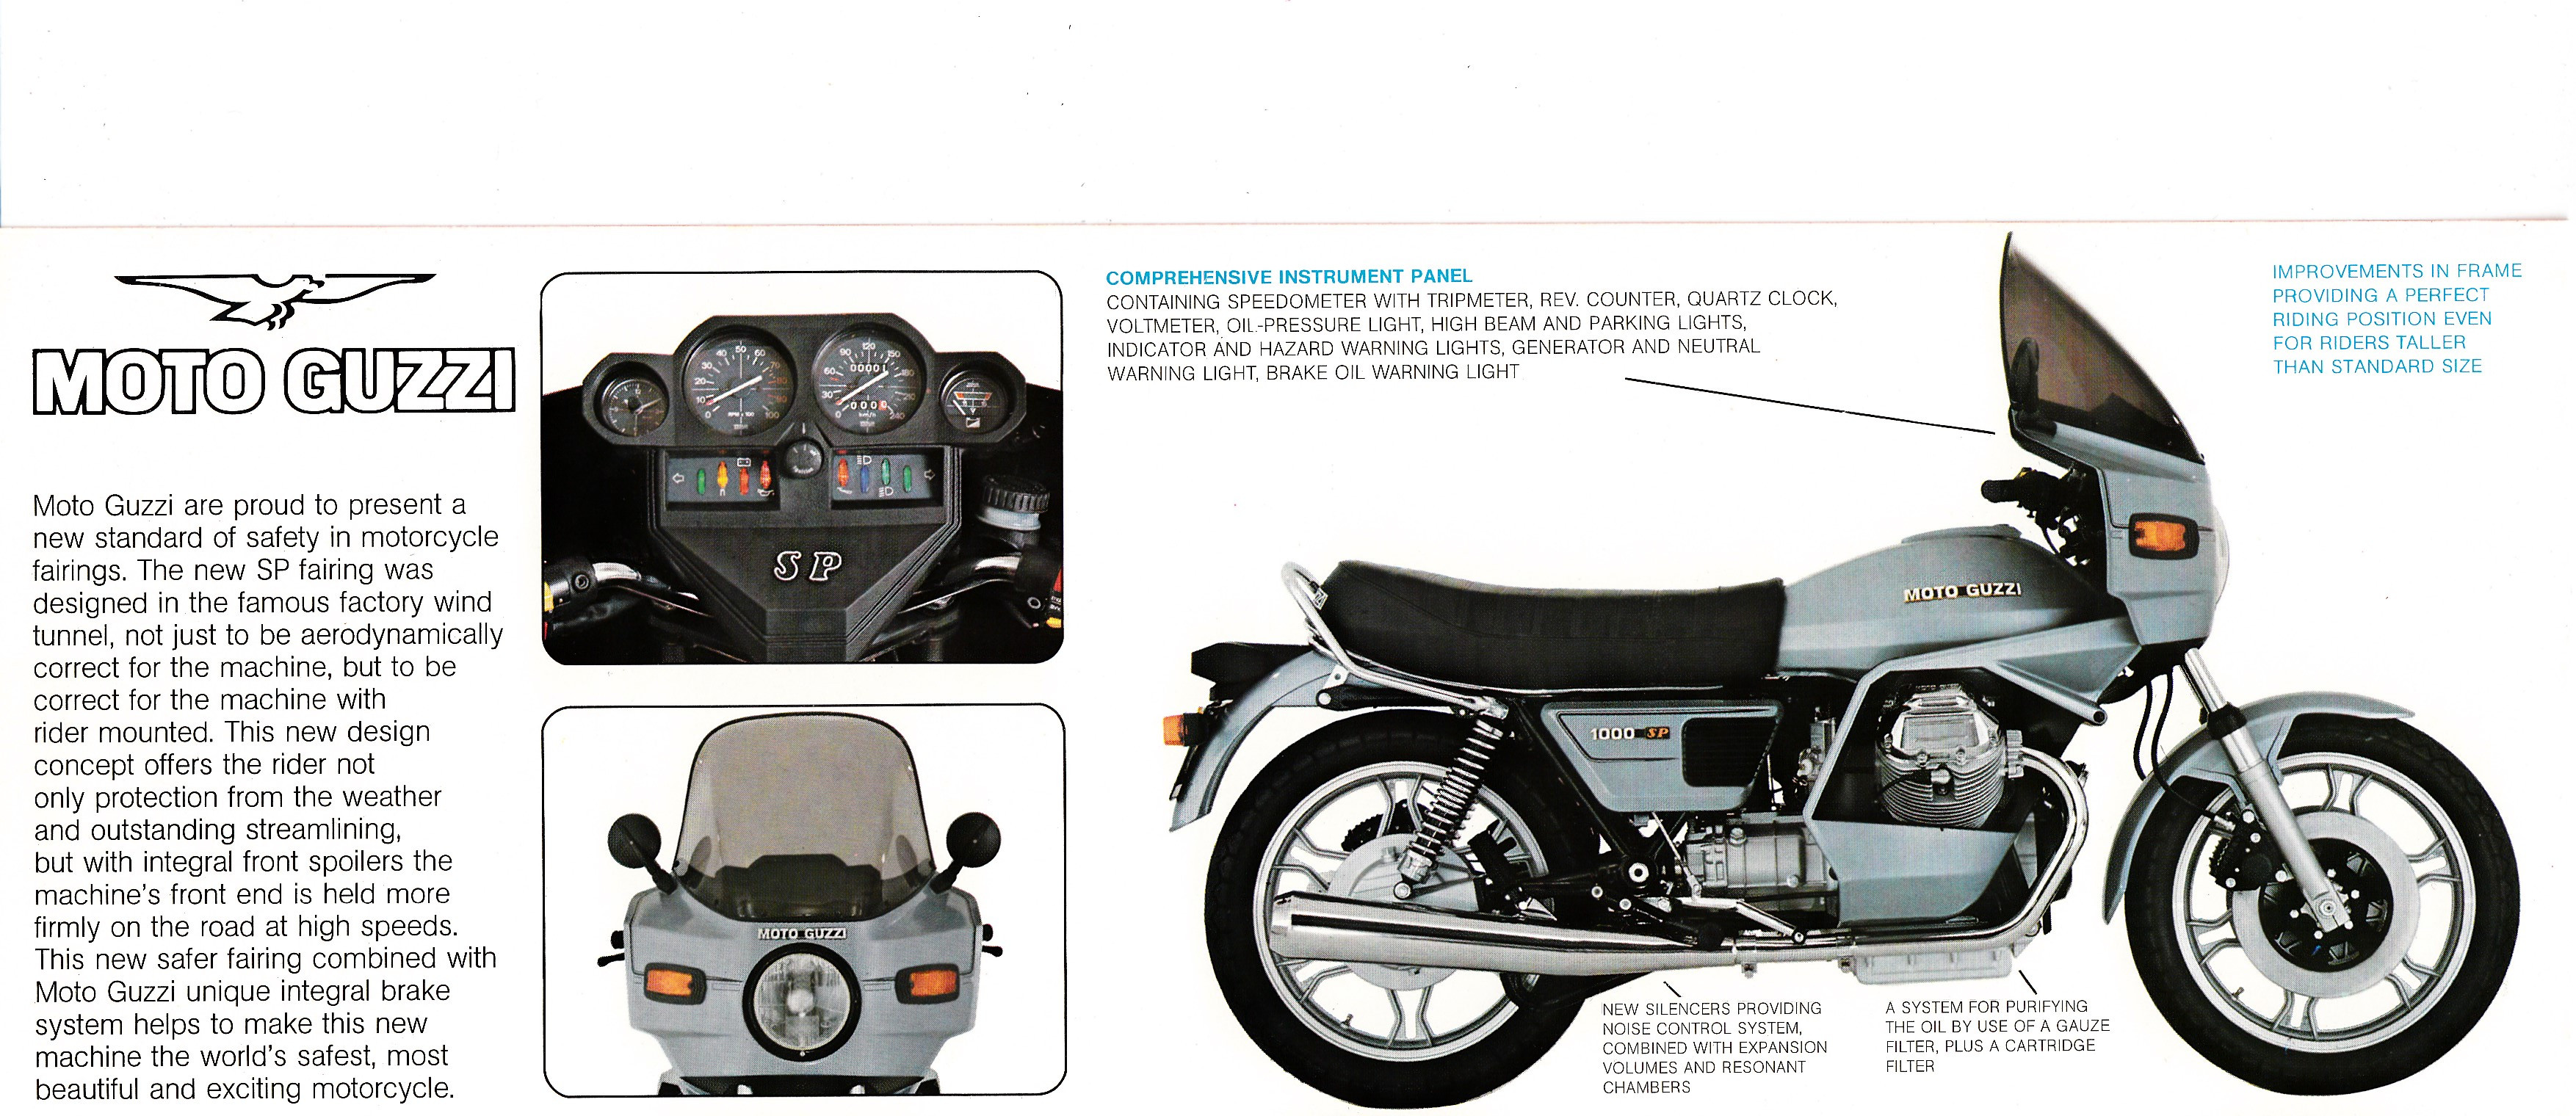 Brochure - Moto Guzzi 1000 SP (blue, folded style brochure)